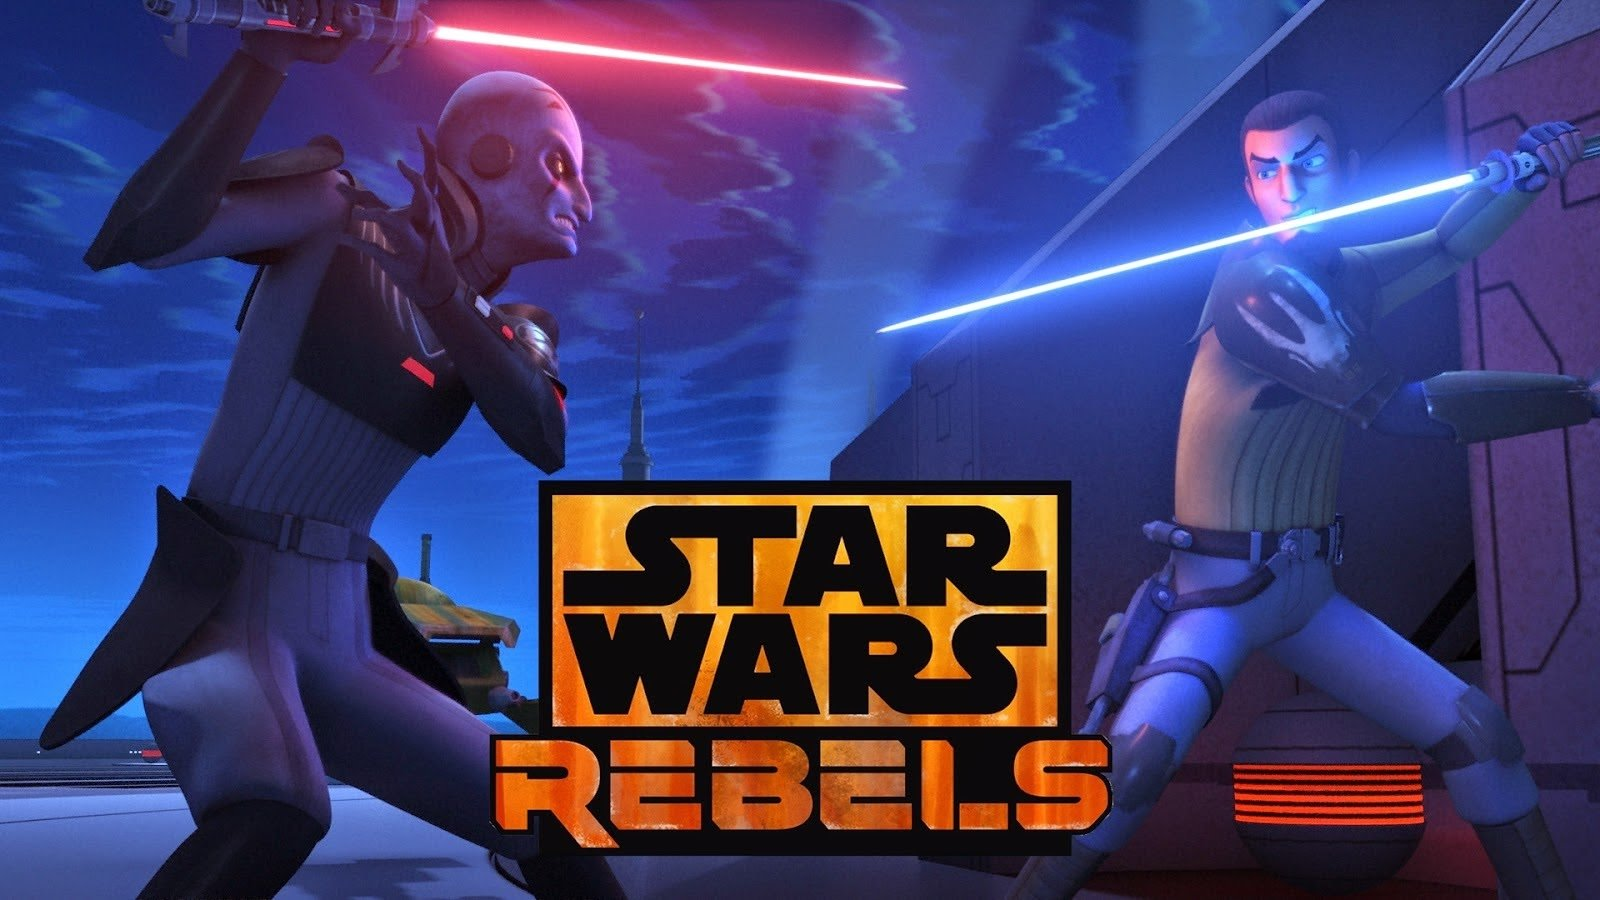 Star Wars Rebels Wallpaper And Background 1600x900 ID